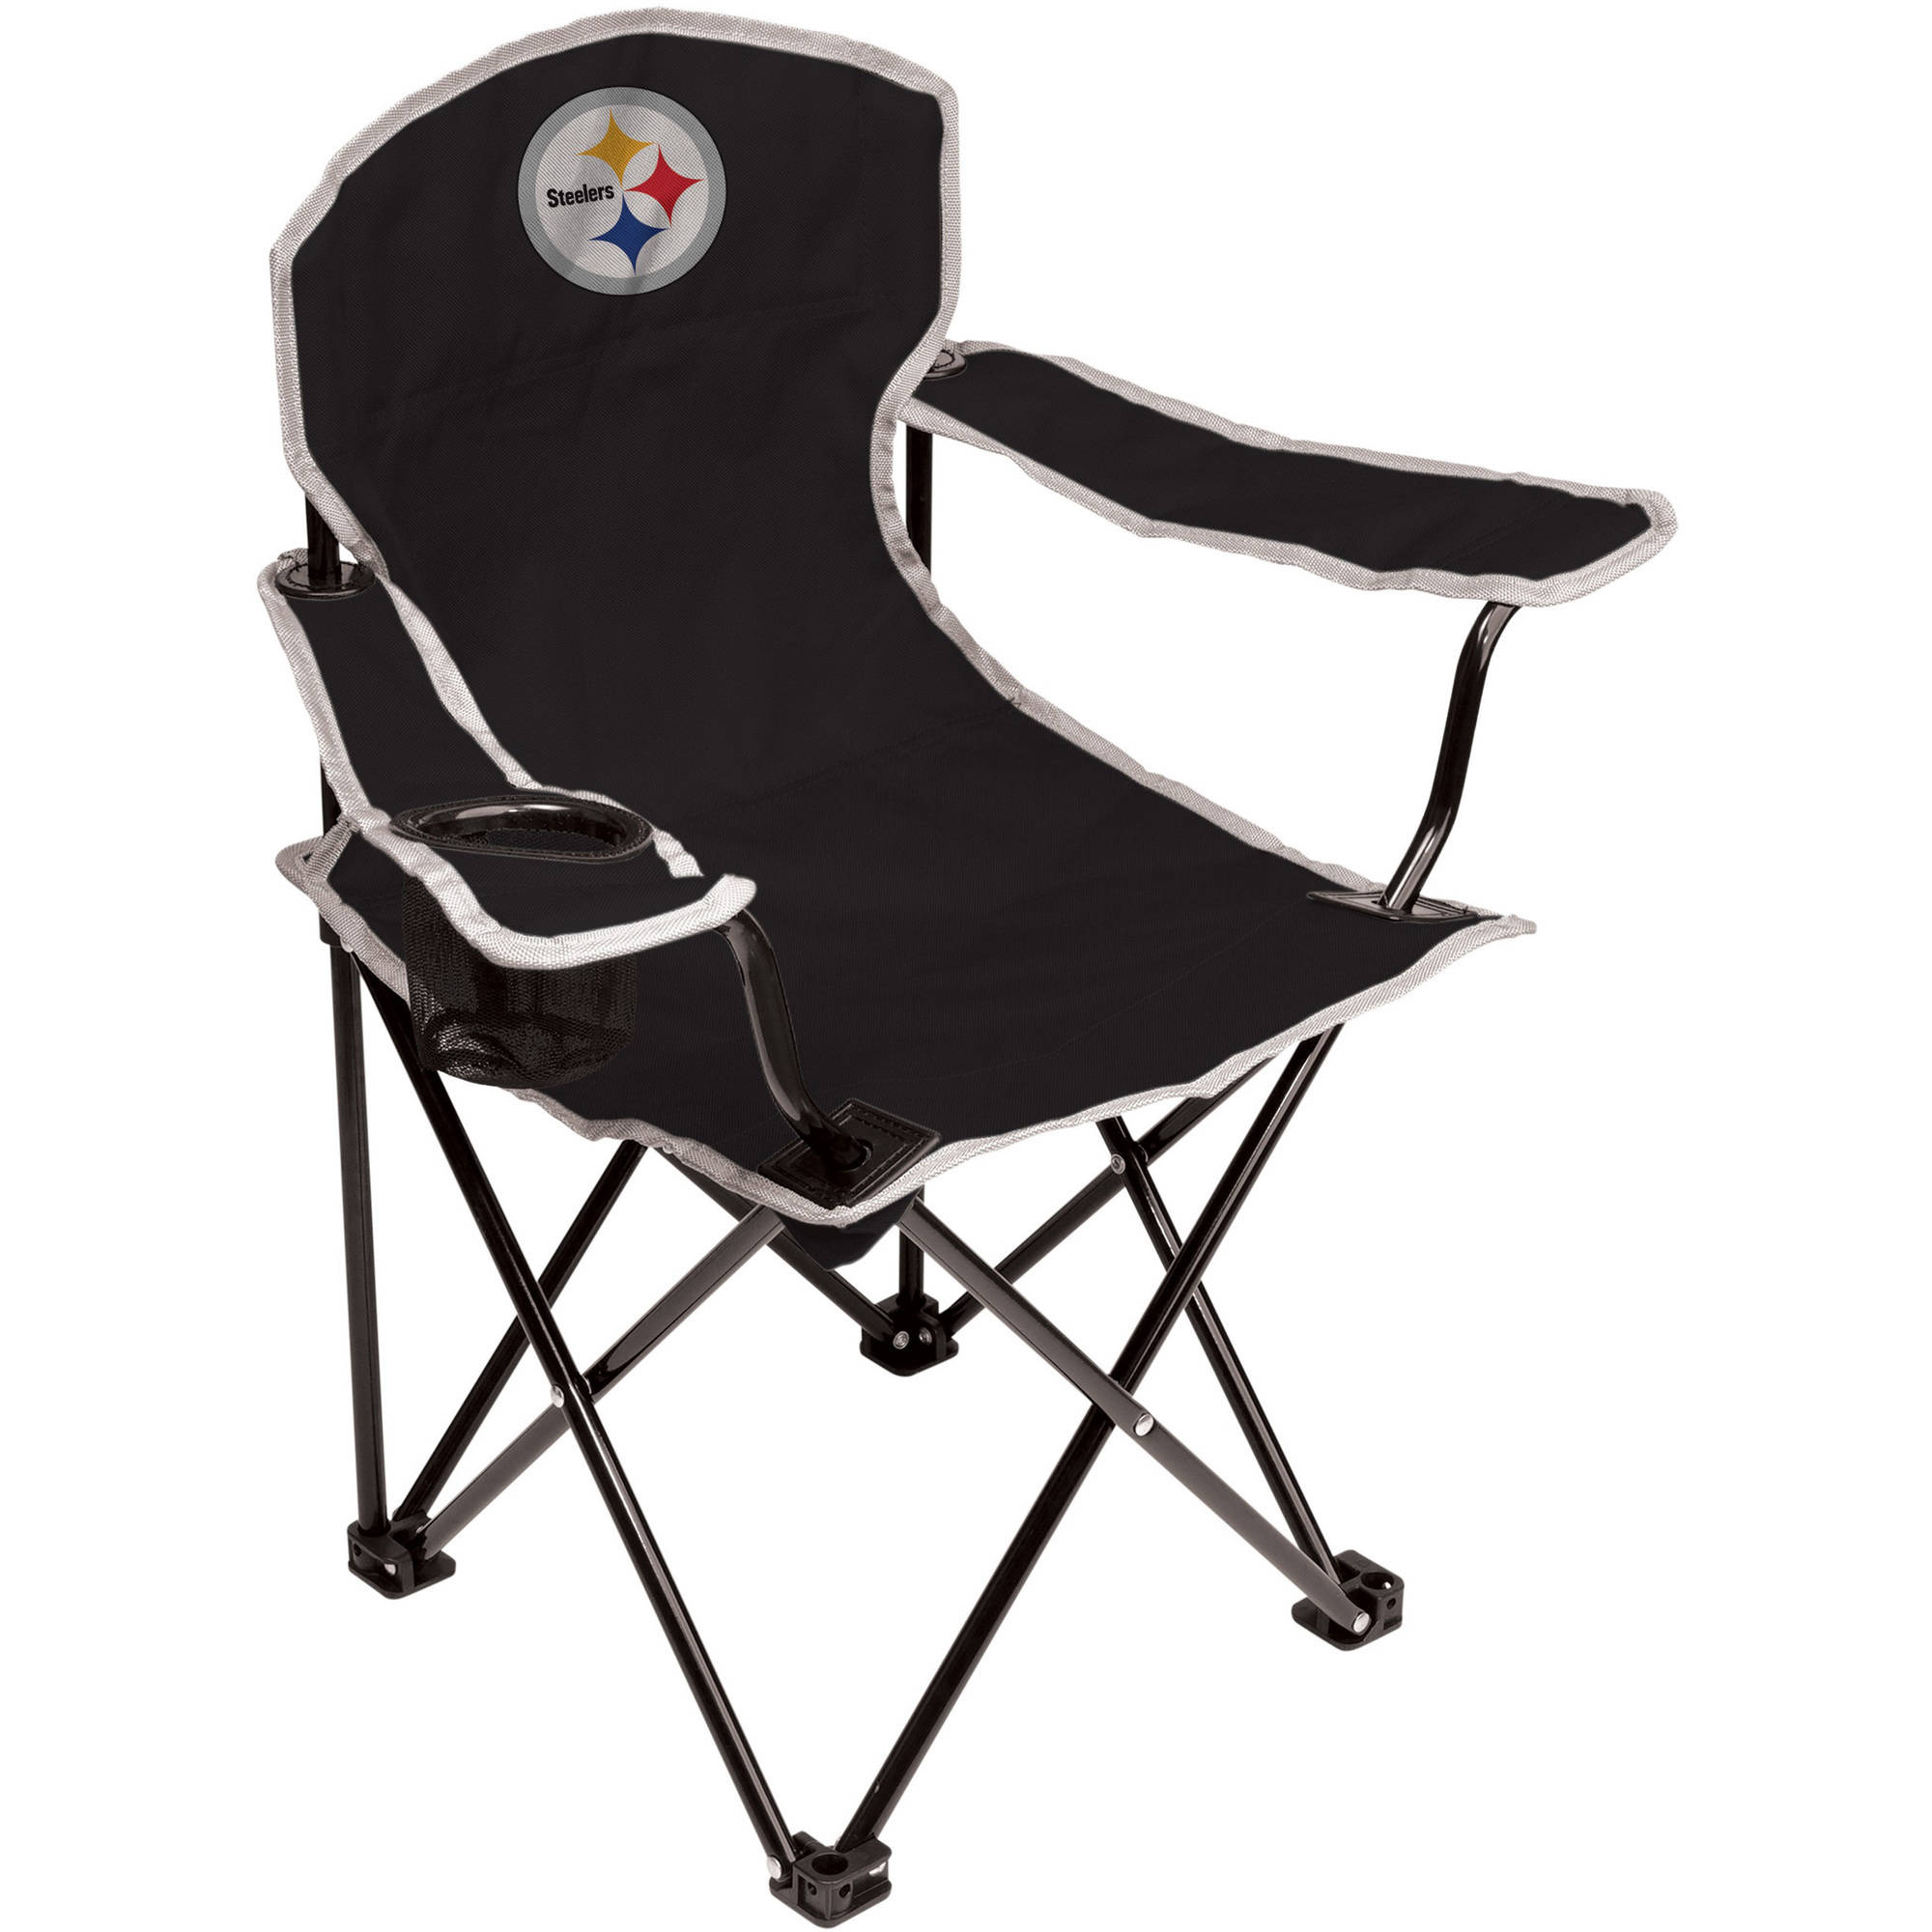 Tremendous Nfl Pittsburgh Steelers Youth Size Tailgate Chair From Coleman By Rawlings Uwap Interior Chair Design Uwaporg